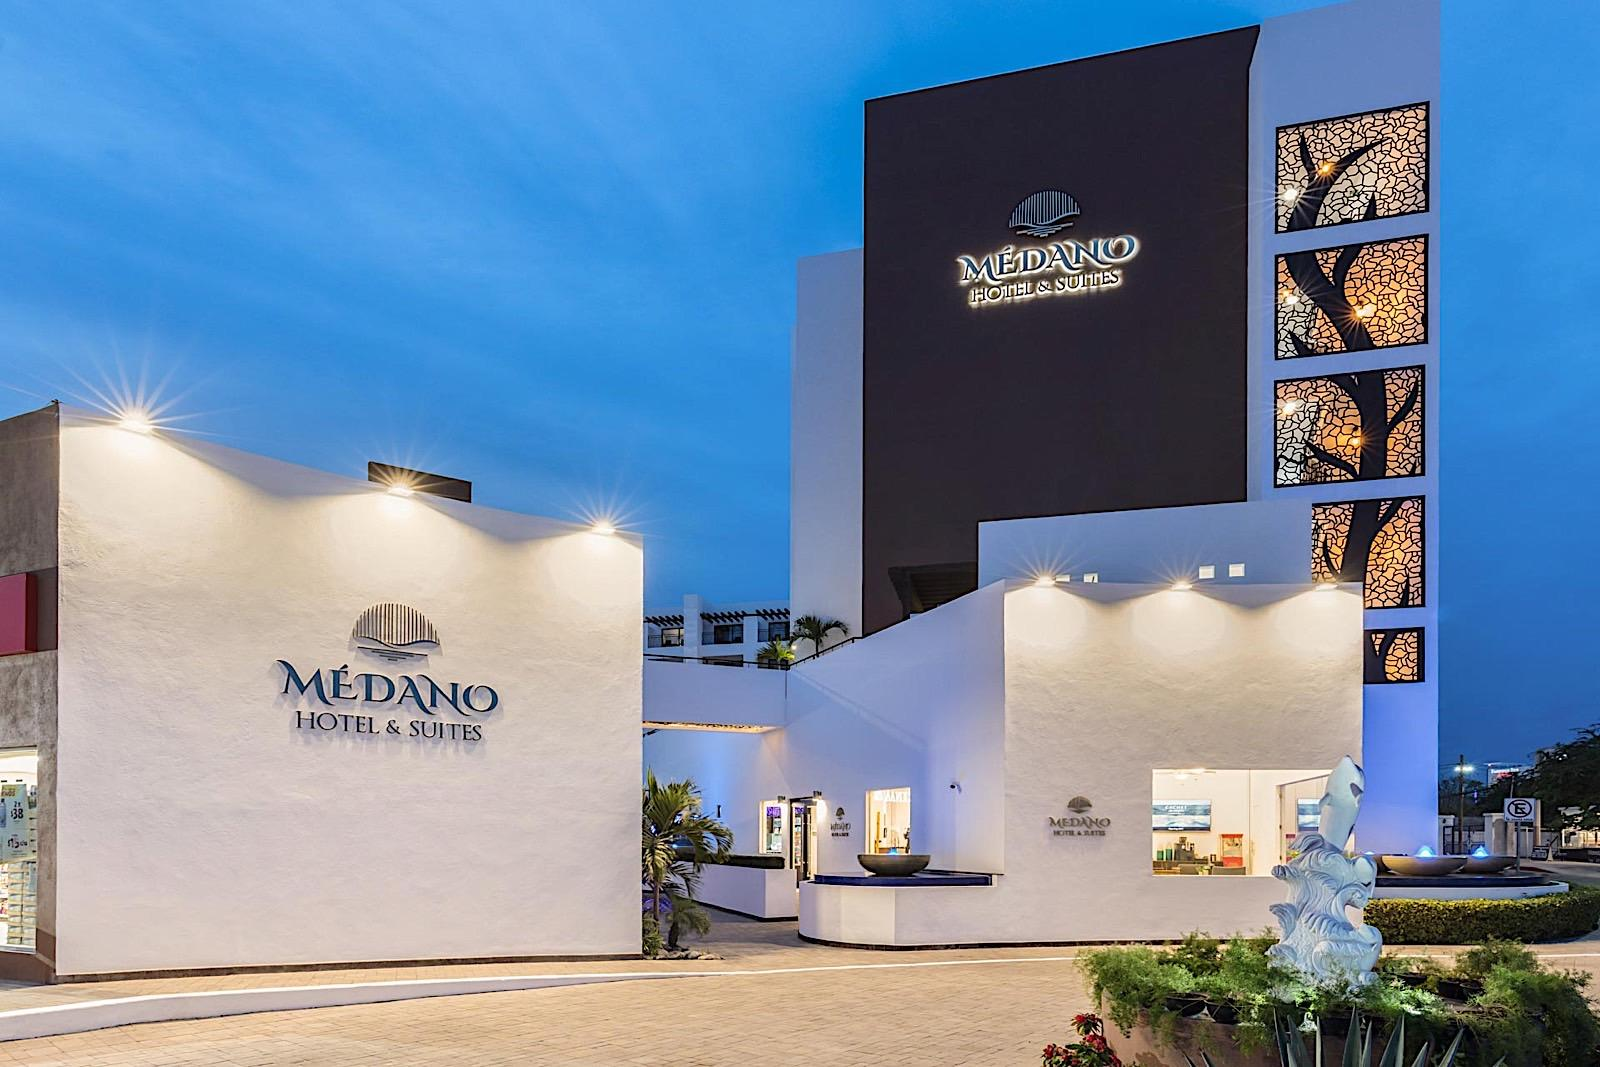 Medano Hotel and Suites Exterior